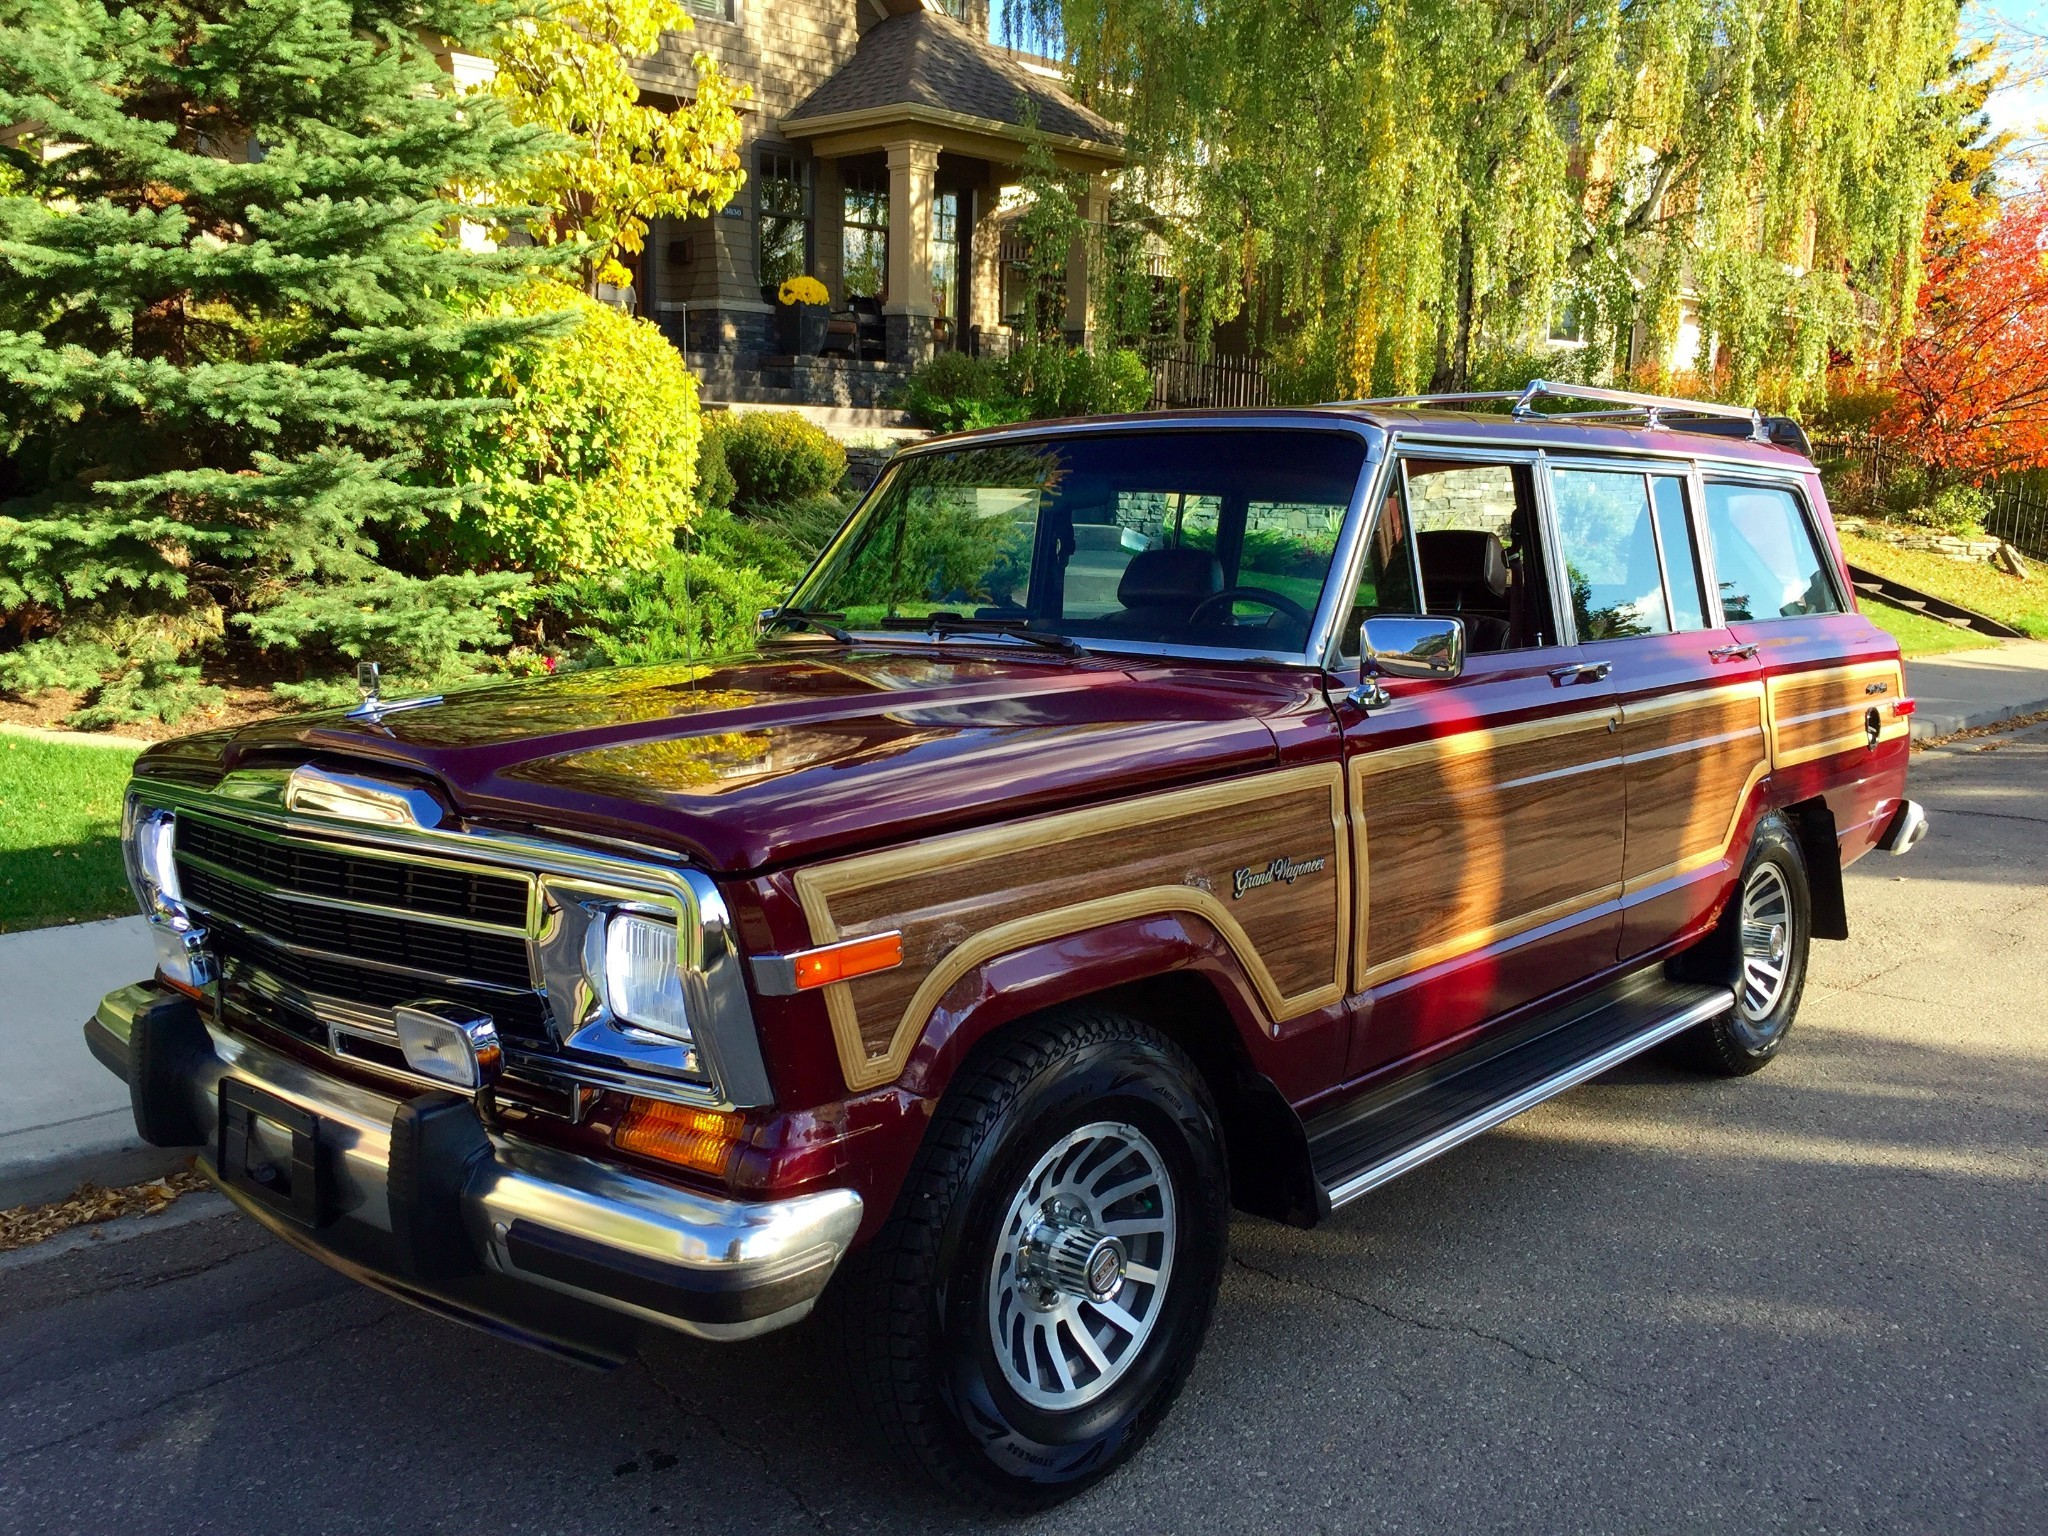 new jeep grand wagoneer launch date set for 2018 to get maserati twin turbo v6 v8 mills. Black Bedroom Furniture Sets. Home Design Ideas